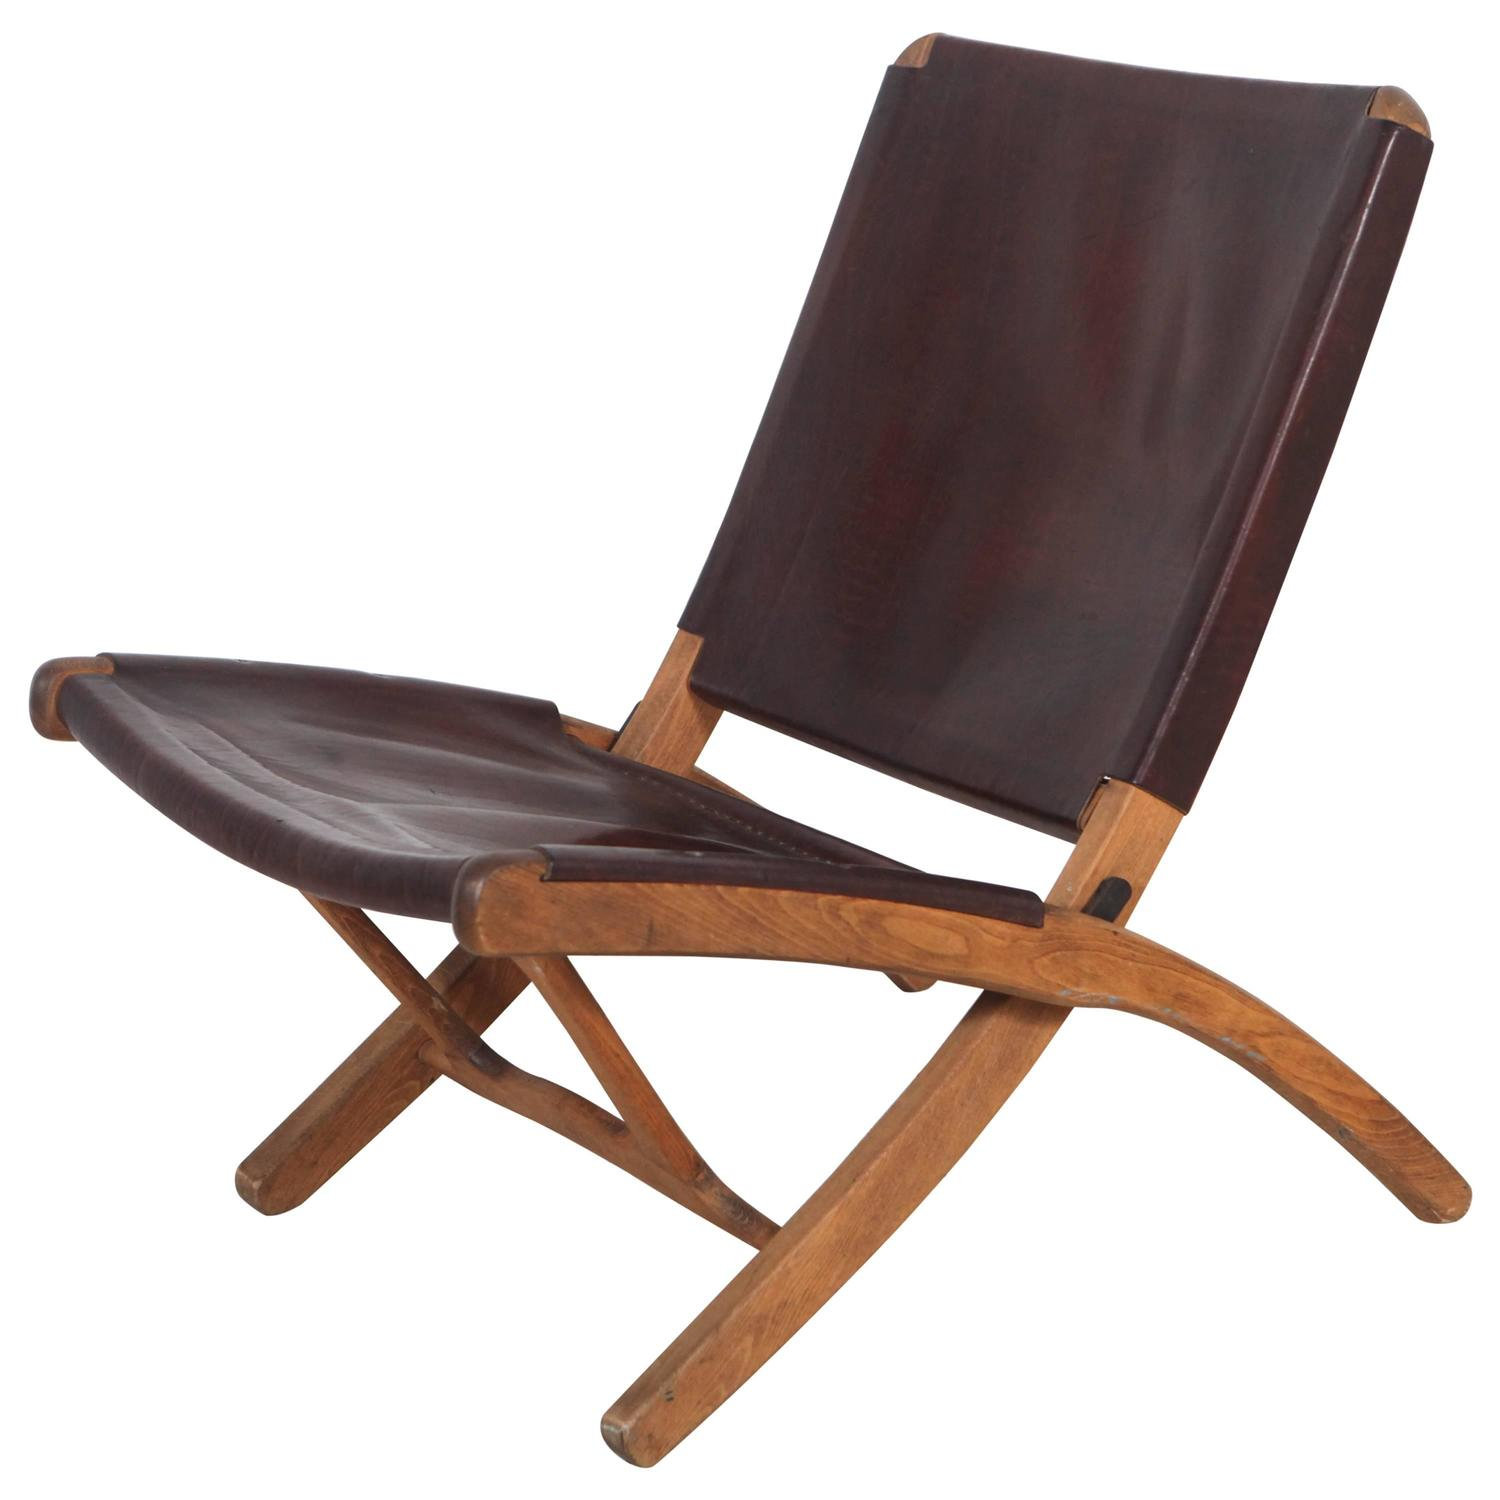 Italian Leather and Wood Folding Chair at 1stdibs